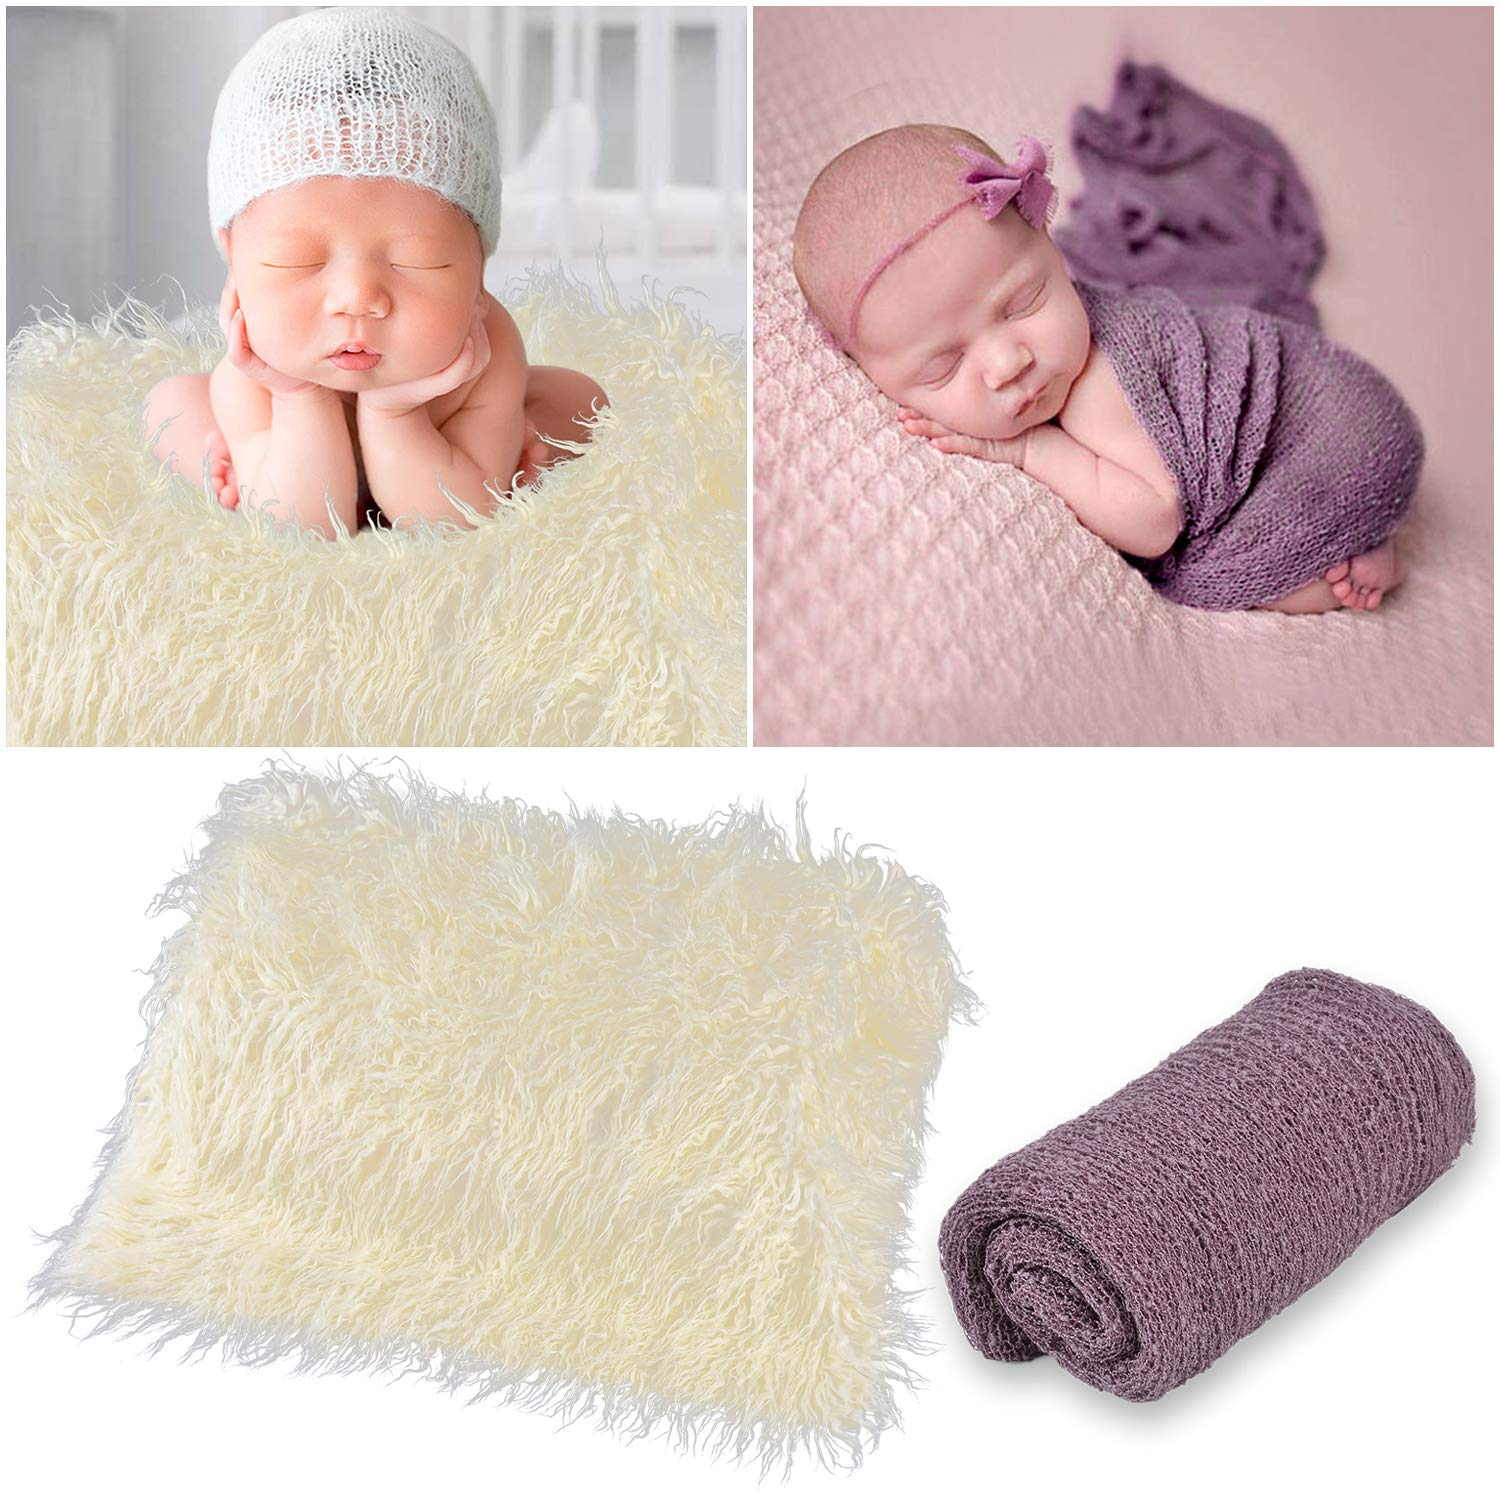 Kapmore Baby Swaddle Blanket Soft Hairy Wraps Photo Prop for Newborn Photography by Kapmore